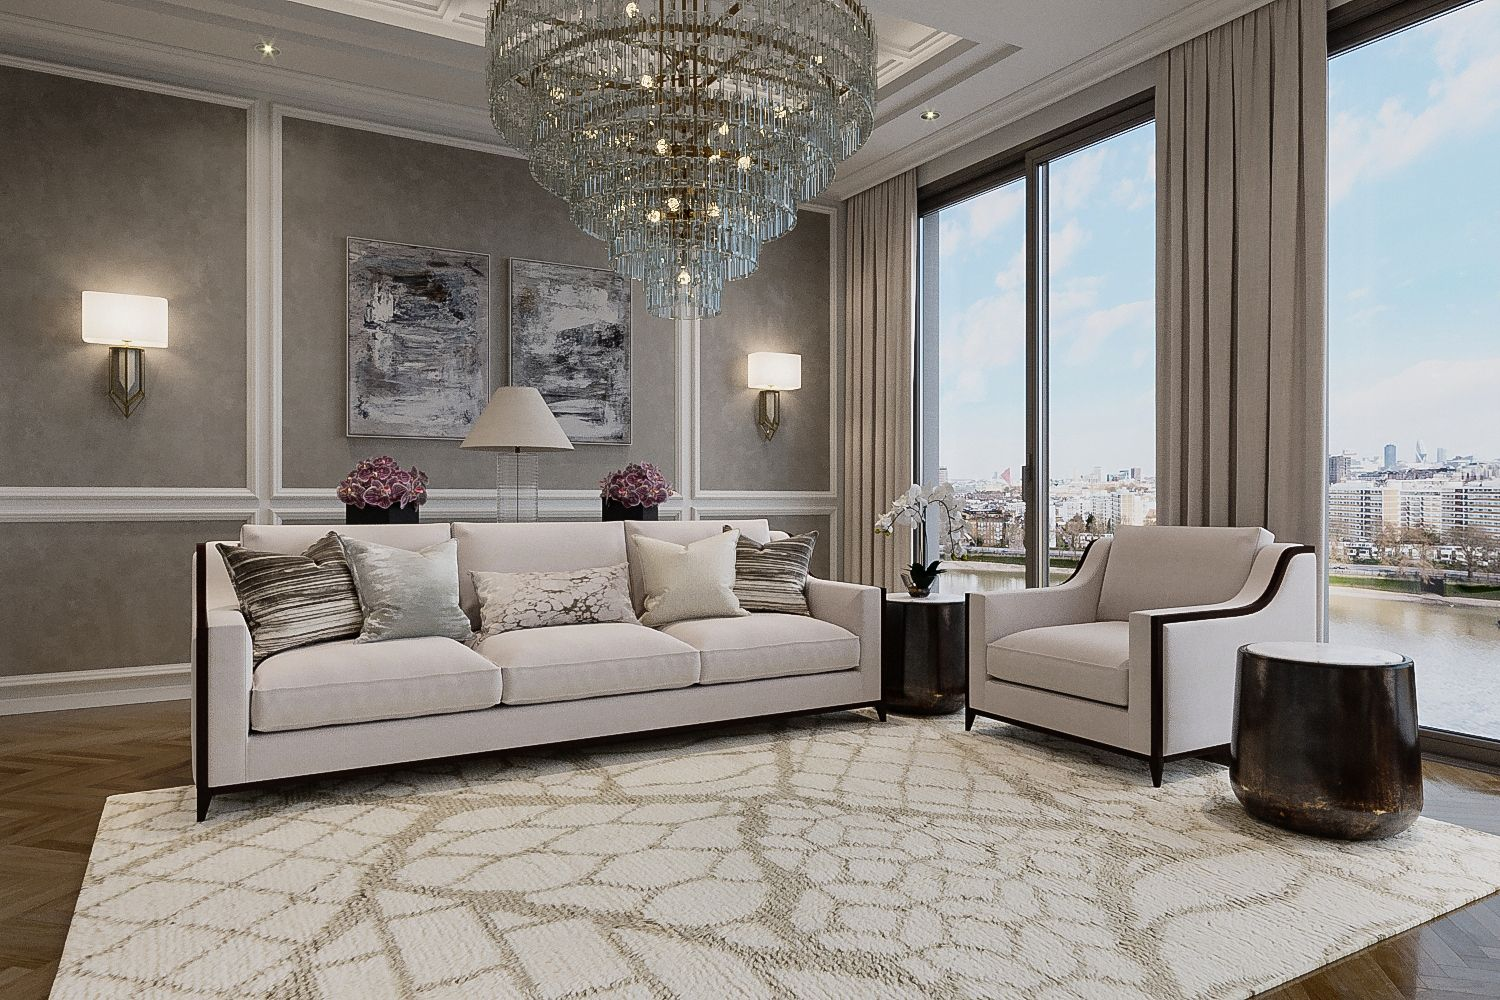 home interior with neutral grey and white rug accents